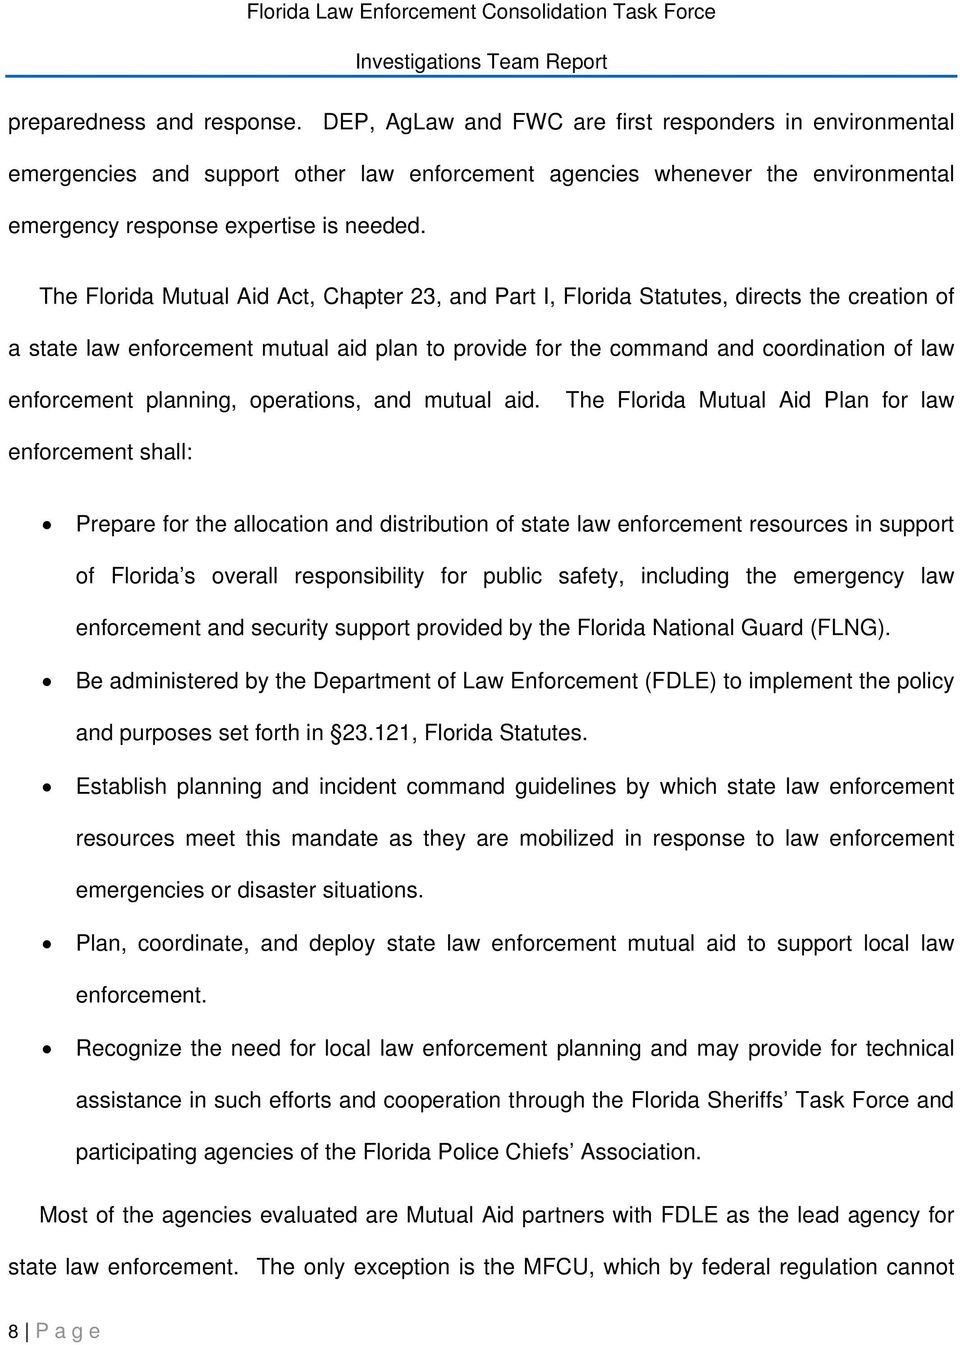 The Florida Mutual Aid Act, Chapter 23, and Part I, Florida Statutes, directs the creation of a state law enforcement mutual aid plan to provide for the command and coordination of law enforcement